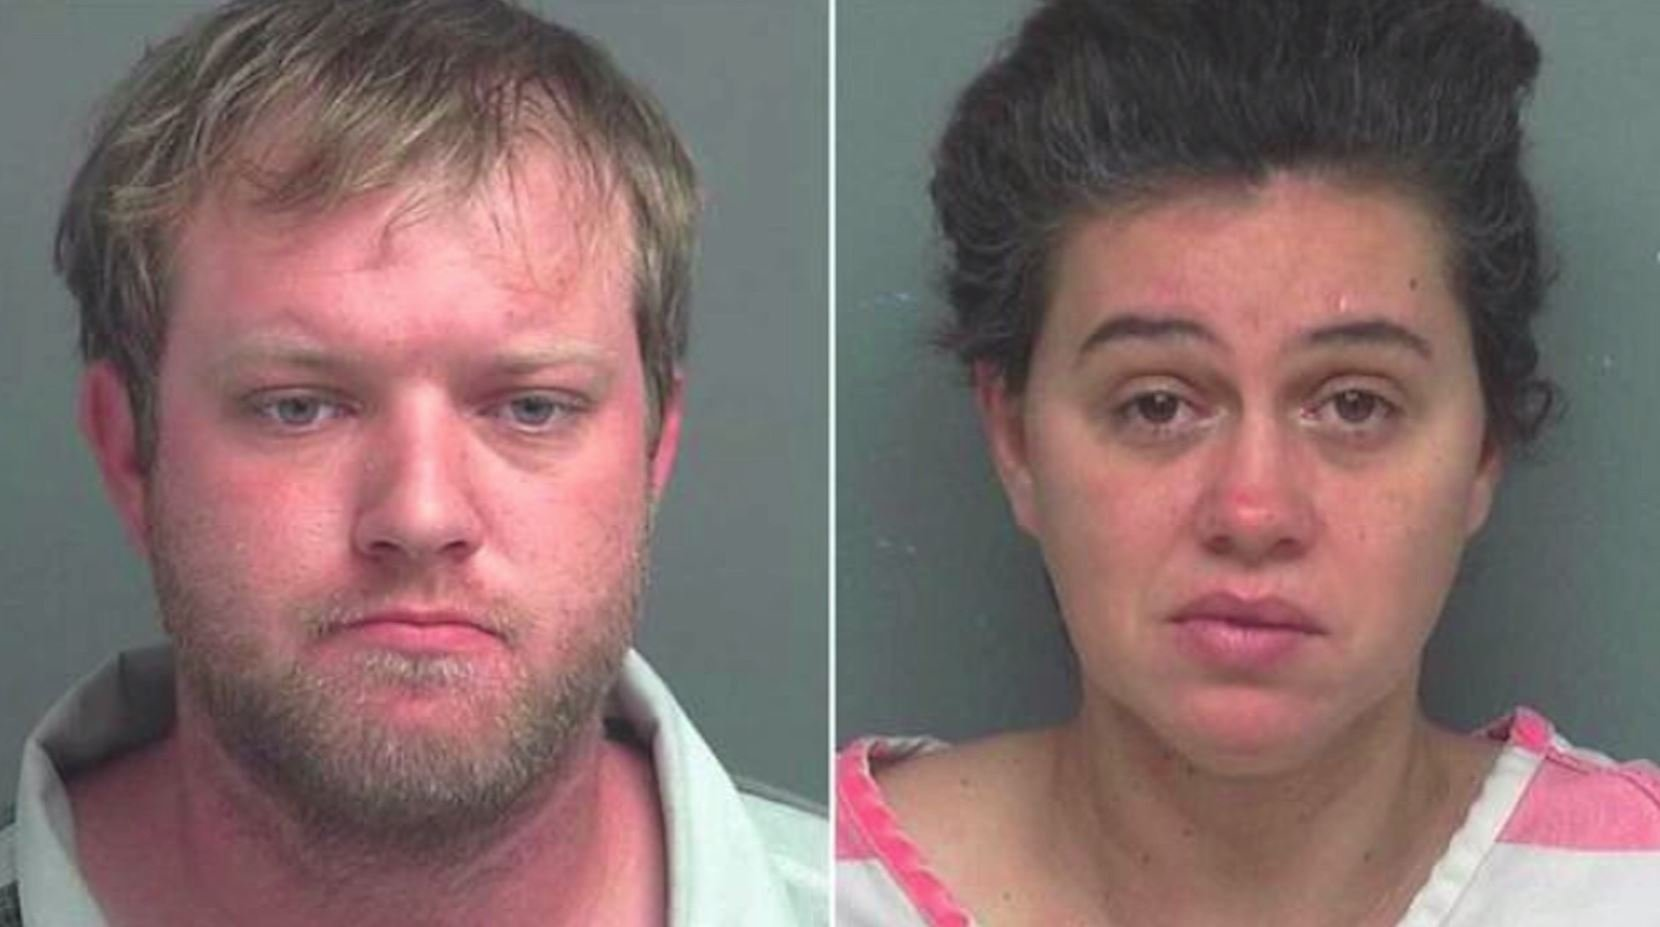 Blake Mayon and Naomi Johnston are facing charges of felony theft. (Source: KPRC/CNN)